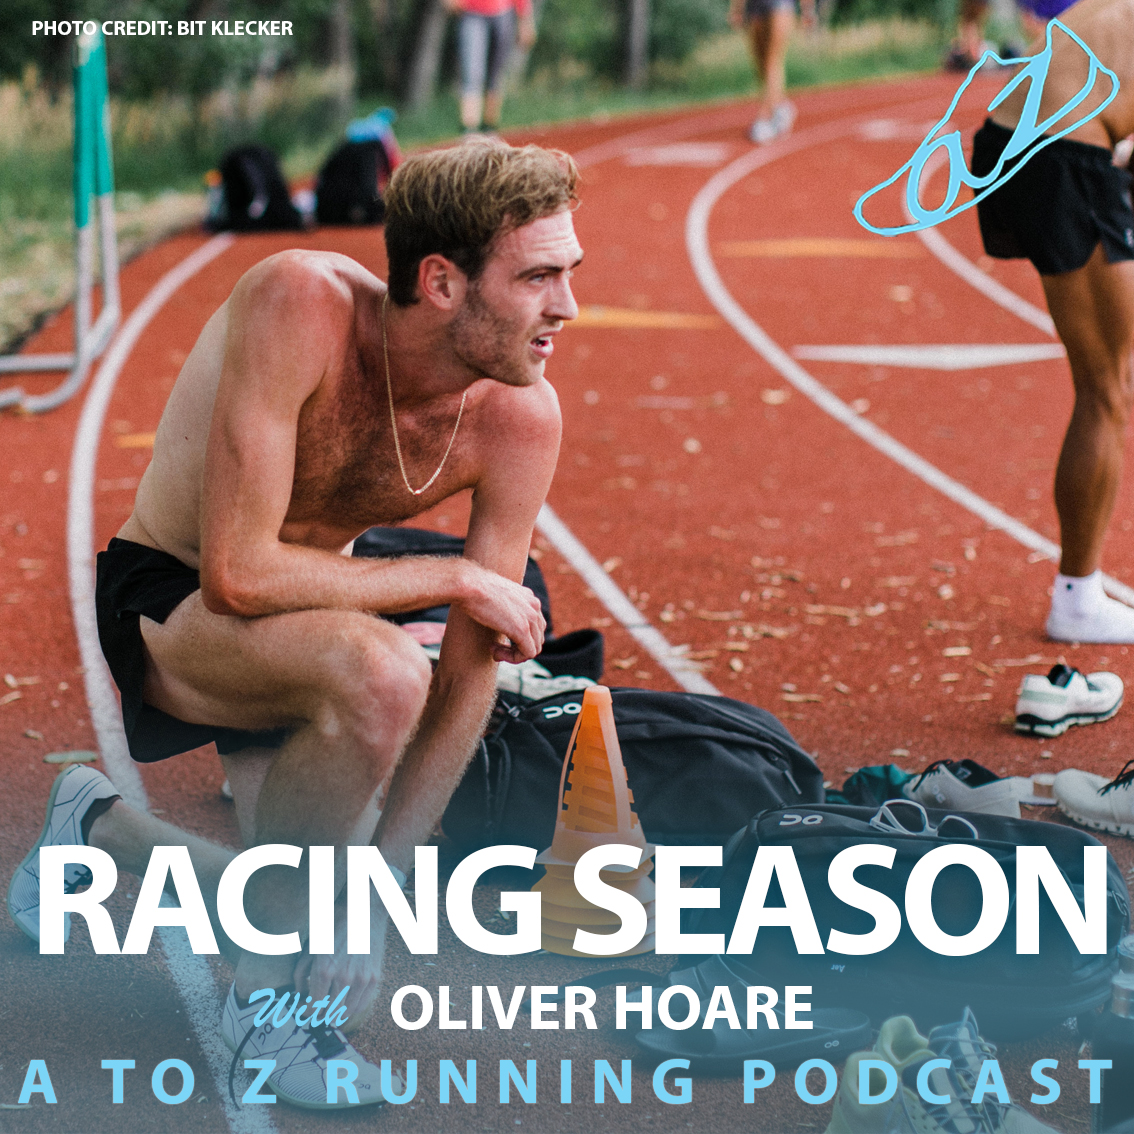 Racing Season with Oliver Hoare